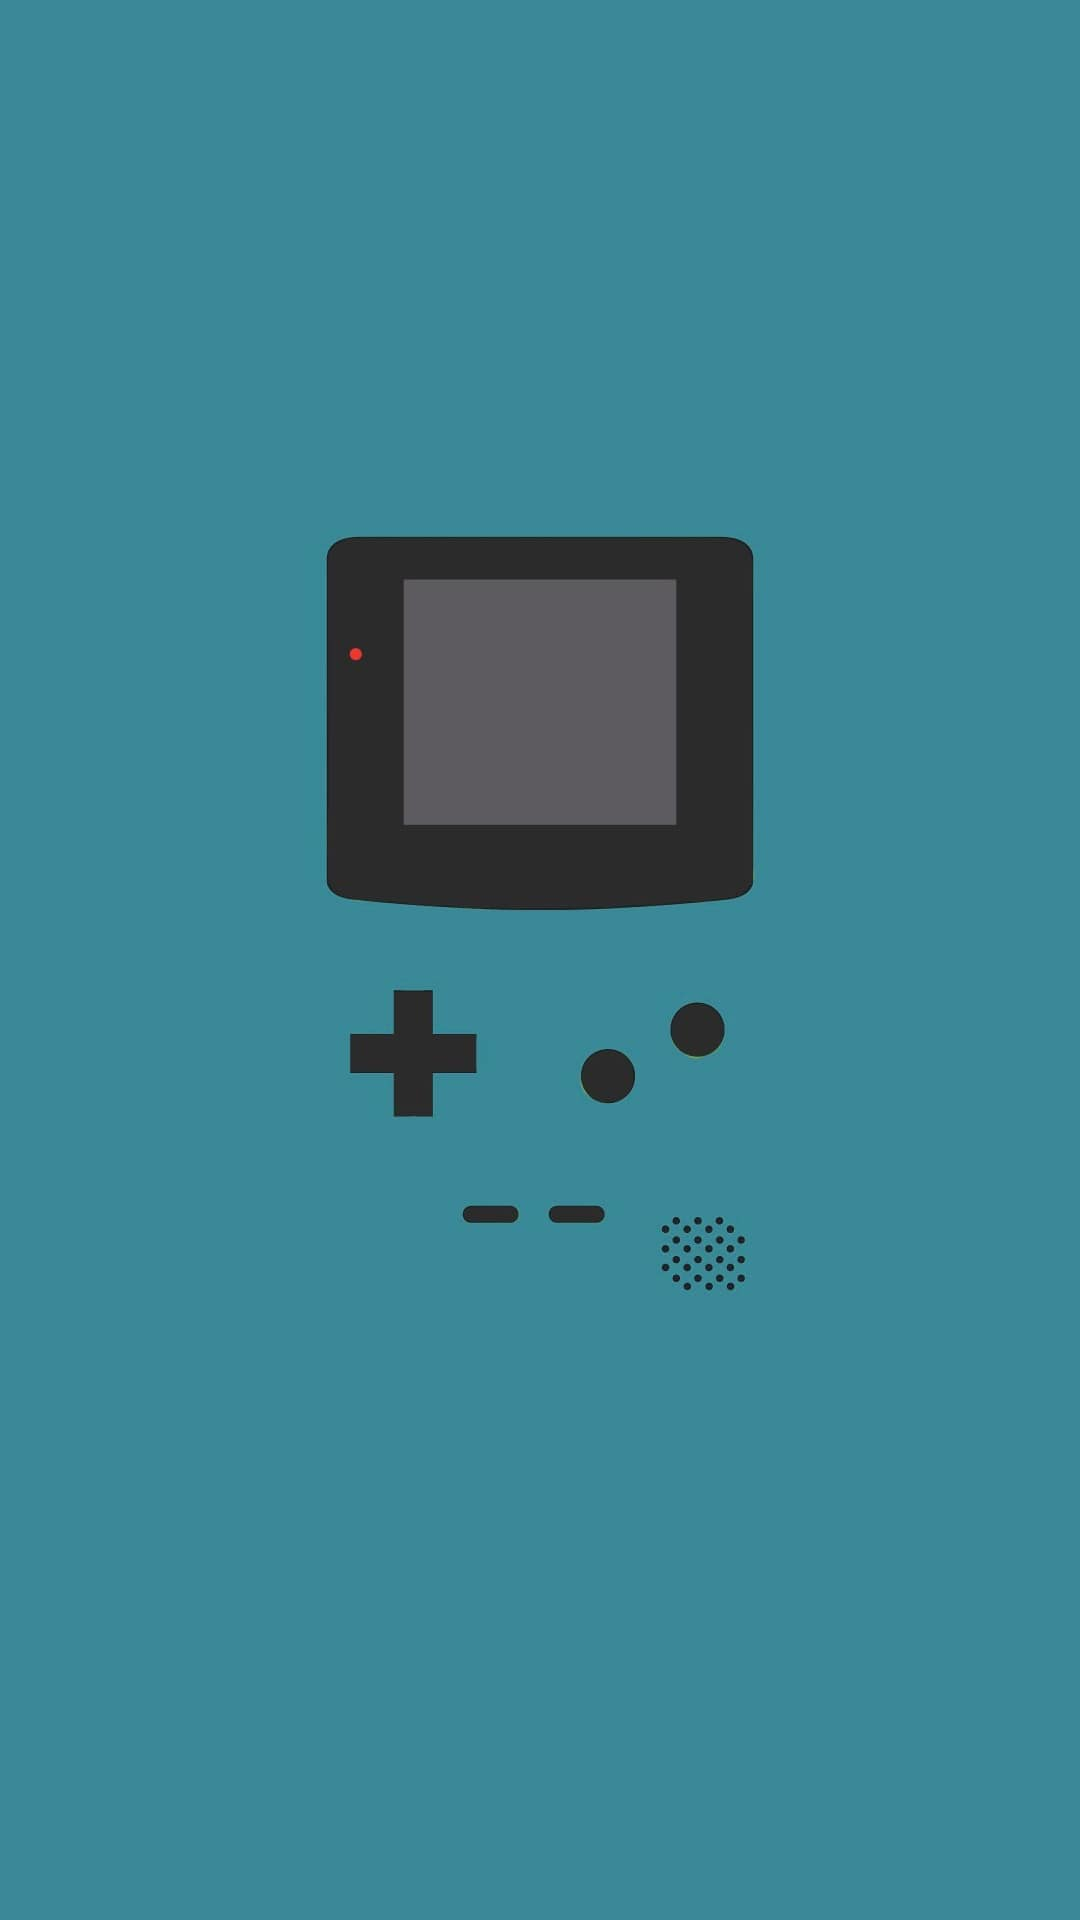 50 Minimalist Iphone Wallpapers Man Of Many